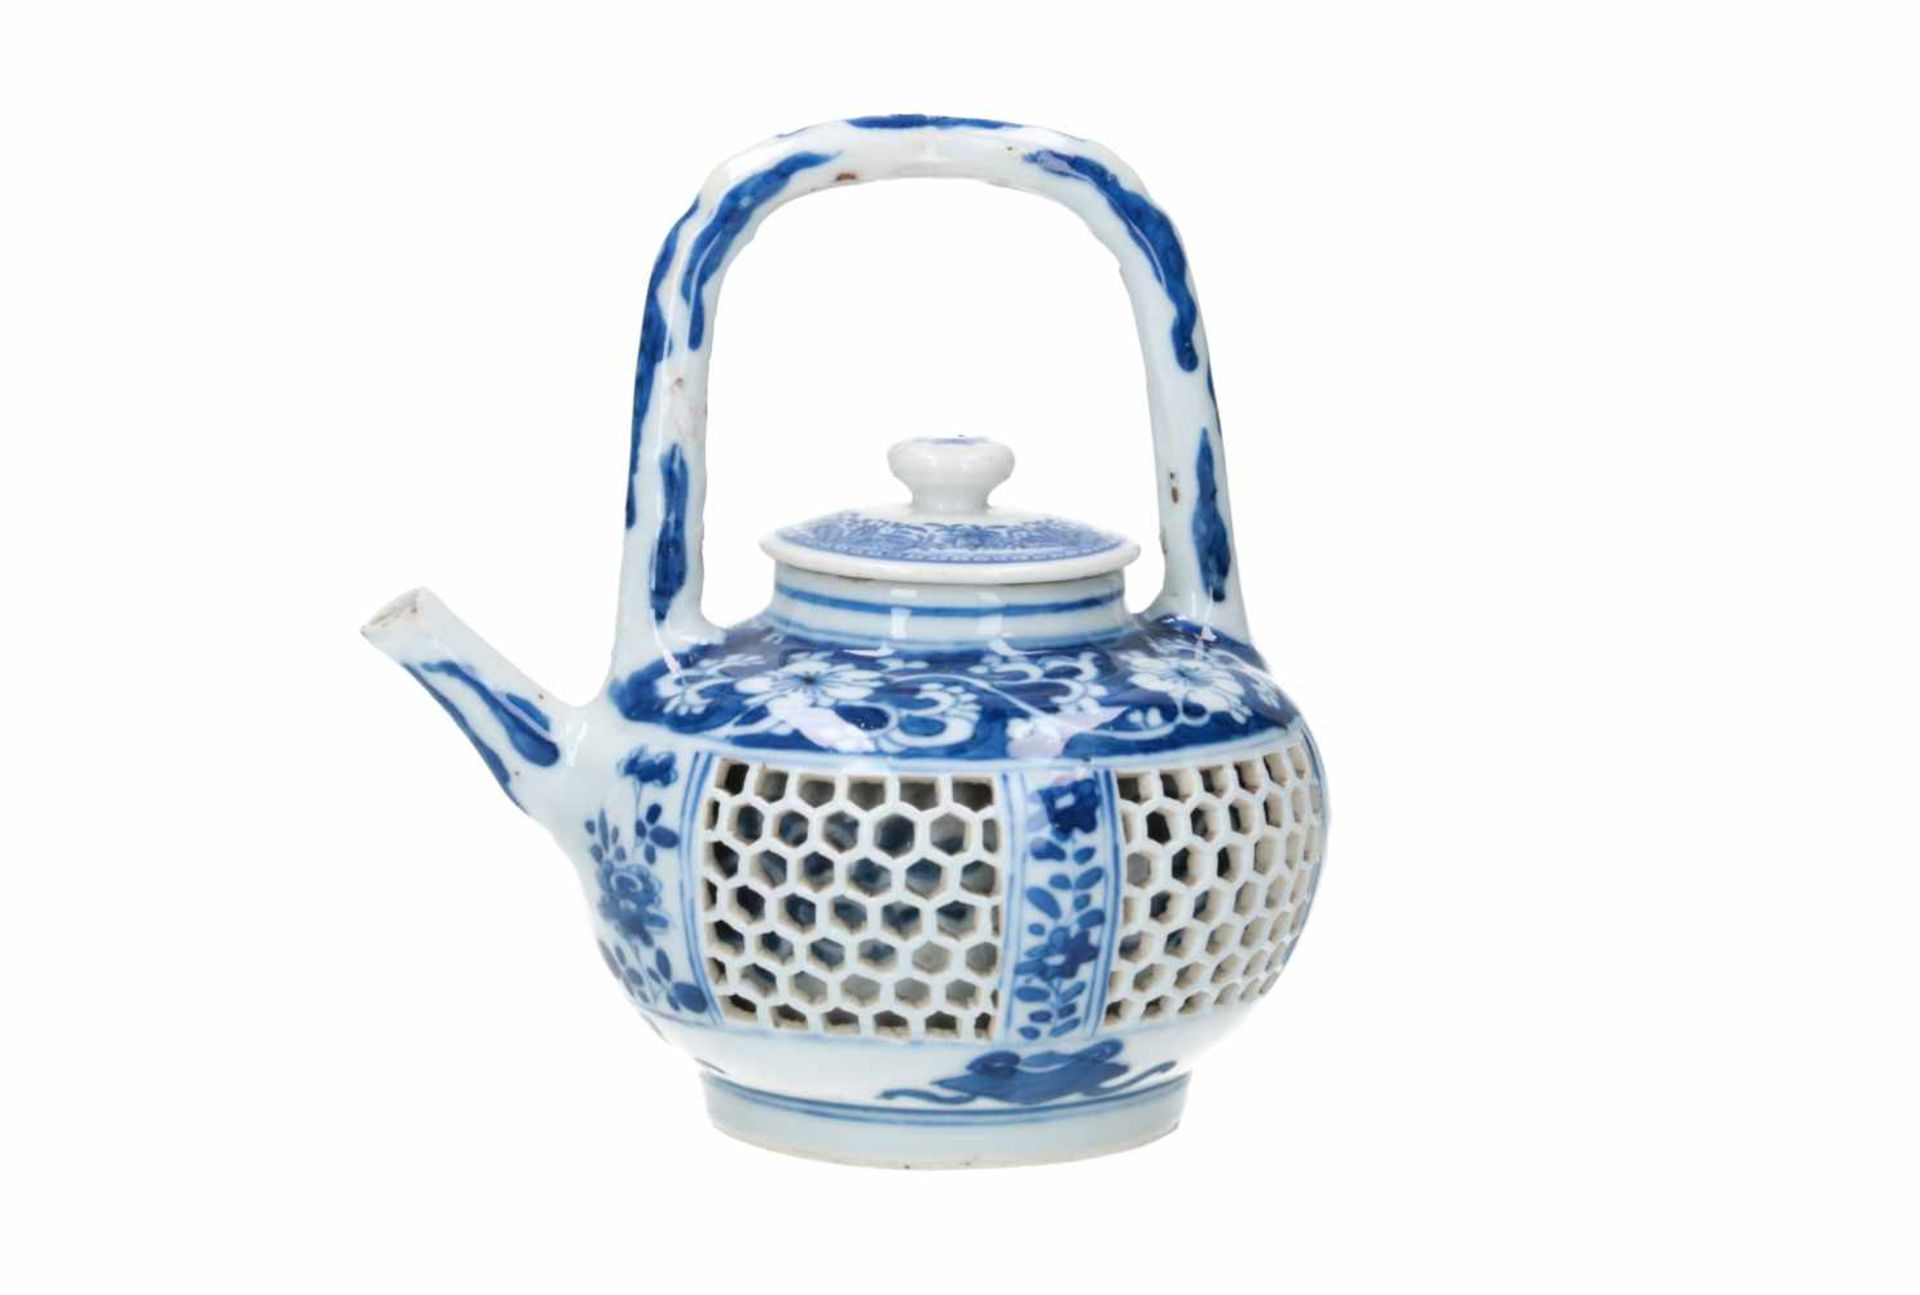 A blue and white porcelain teapot with open work belly, decorated with flowers and censers. Cover